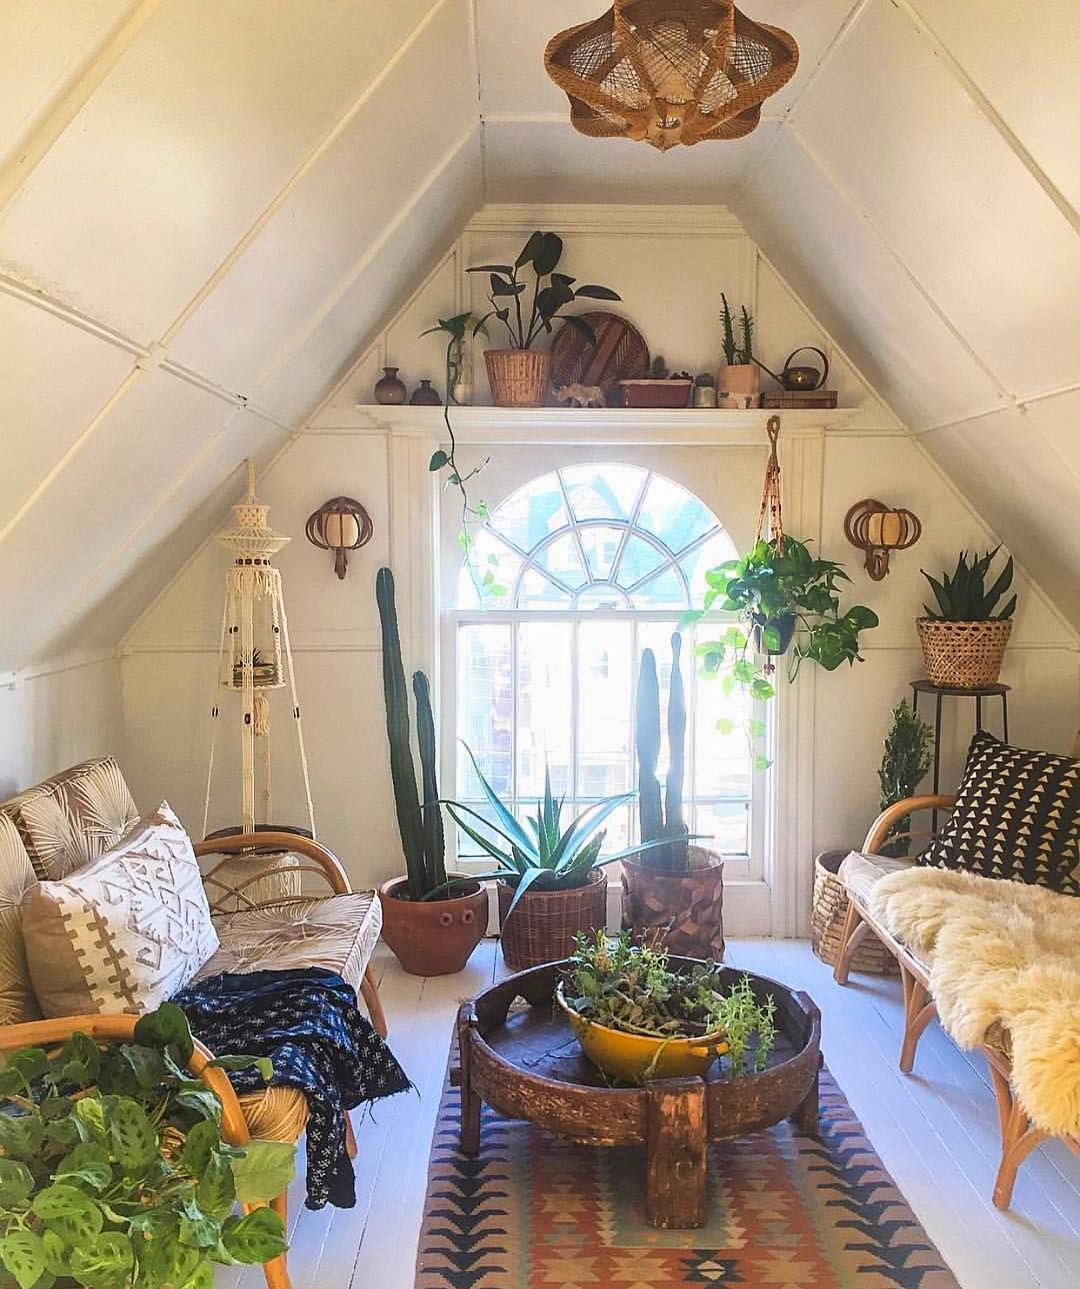 bohemian decorating ideas for living room see this instagram photo by @spirits.of.life - 14.1k likes DAMTARR